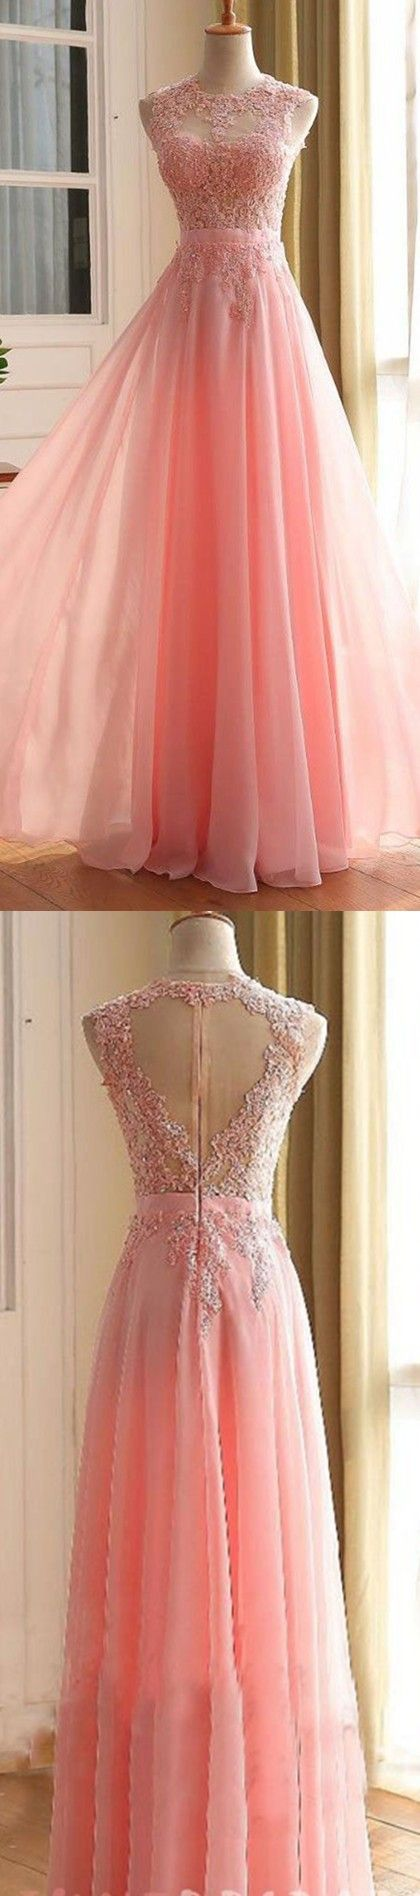 Prom Dresses 2017,Lace Appliques Prom Dresses, Floor Length Prom Dress,Lace Appliques Prom Dress,Beading Prom Dress, A-line Prom Dress, Chiffon Prom Dress, Elegant Prom Dress, Bridesmaid Dress,,custom made Graduation dresses, vogue formal dresses